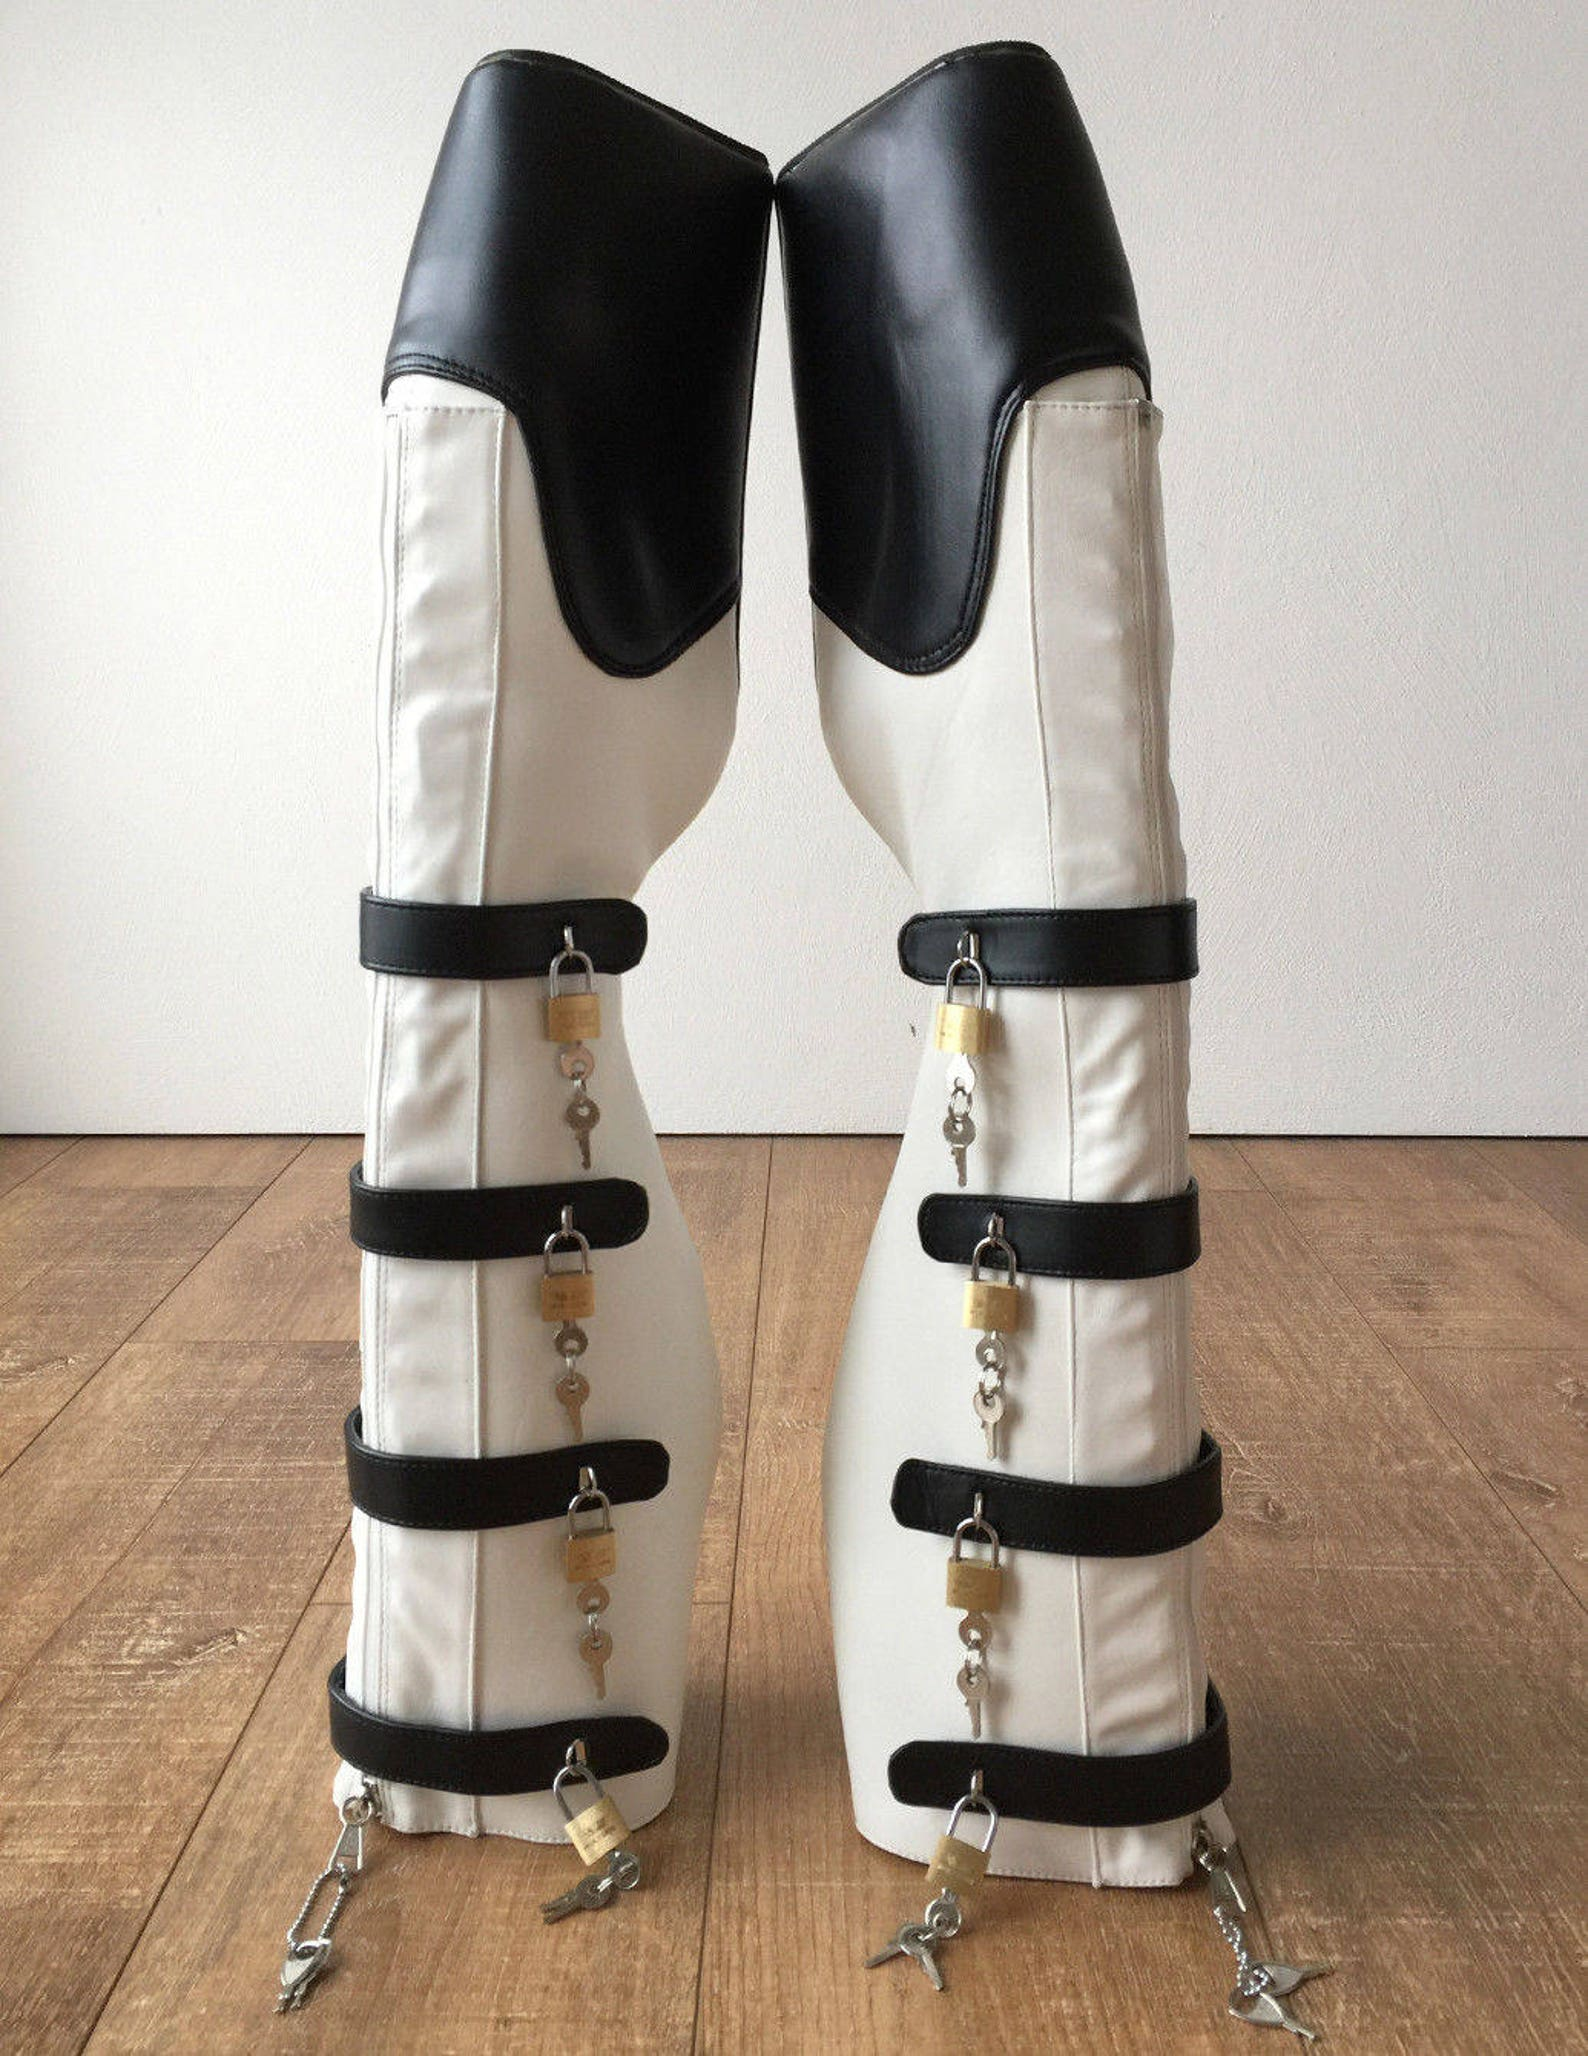 18cm 10 keys lockable beginner ballet wedge boot hoof heelless black white matte